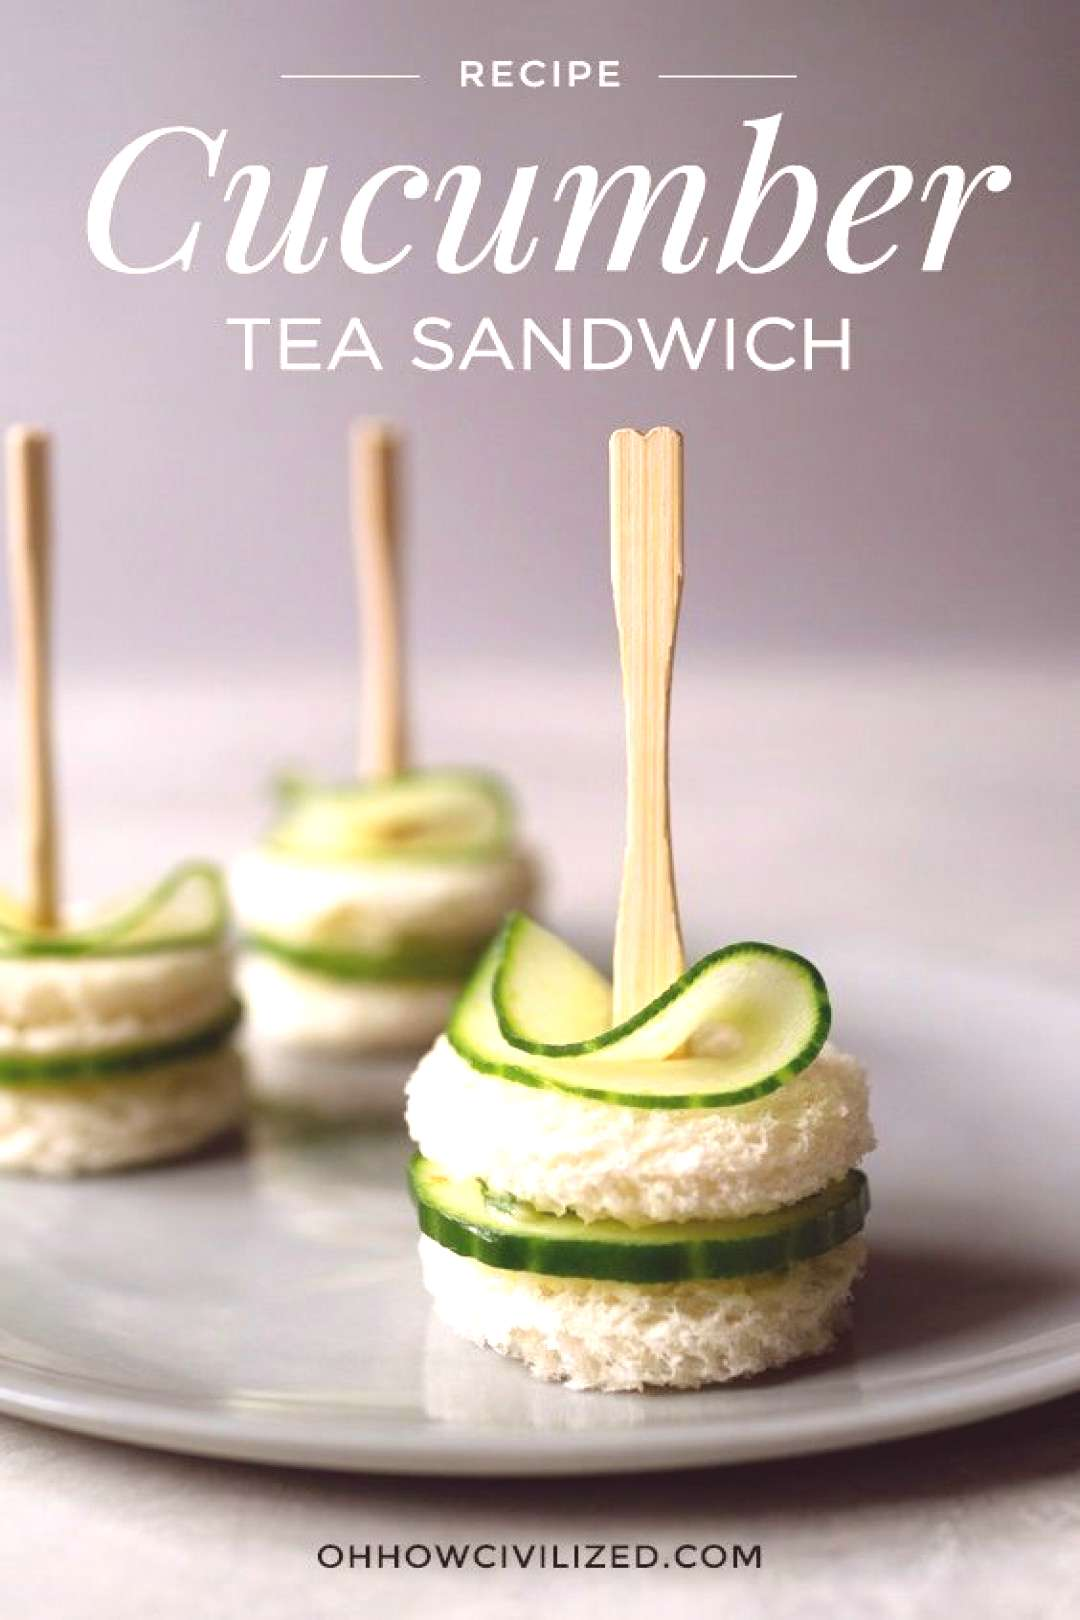 Dainty and easy-to-make cucumber sandwiches with chive butter perfect for tea time and afternoon te